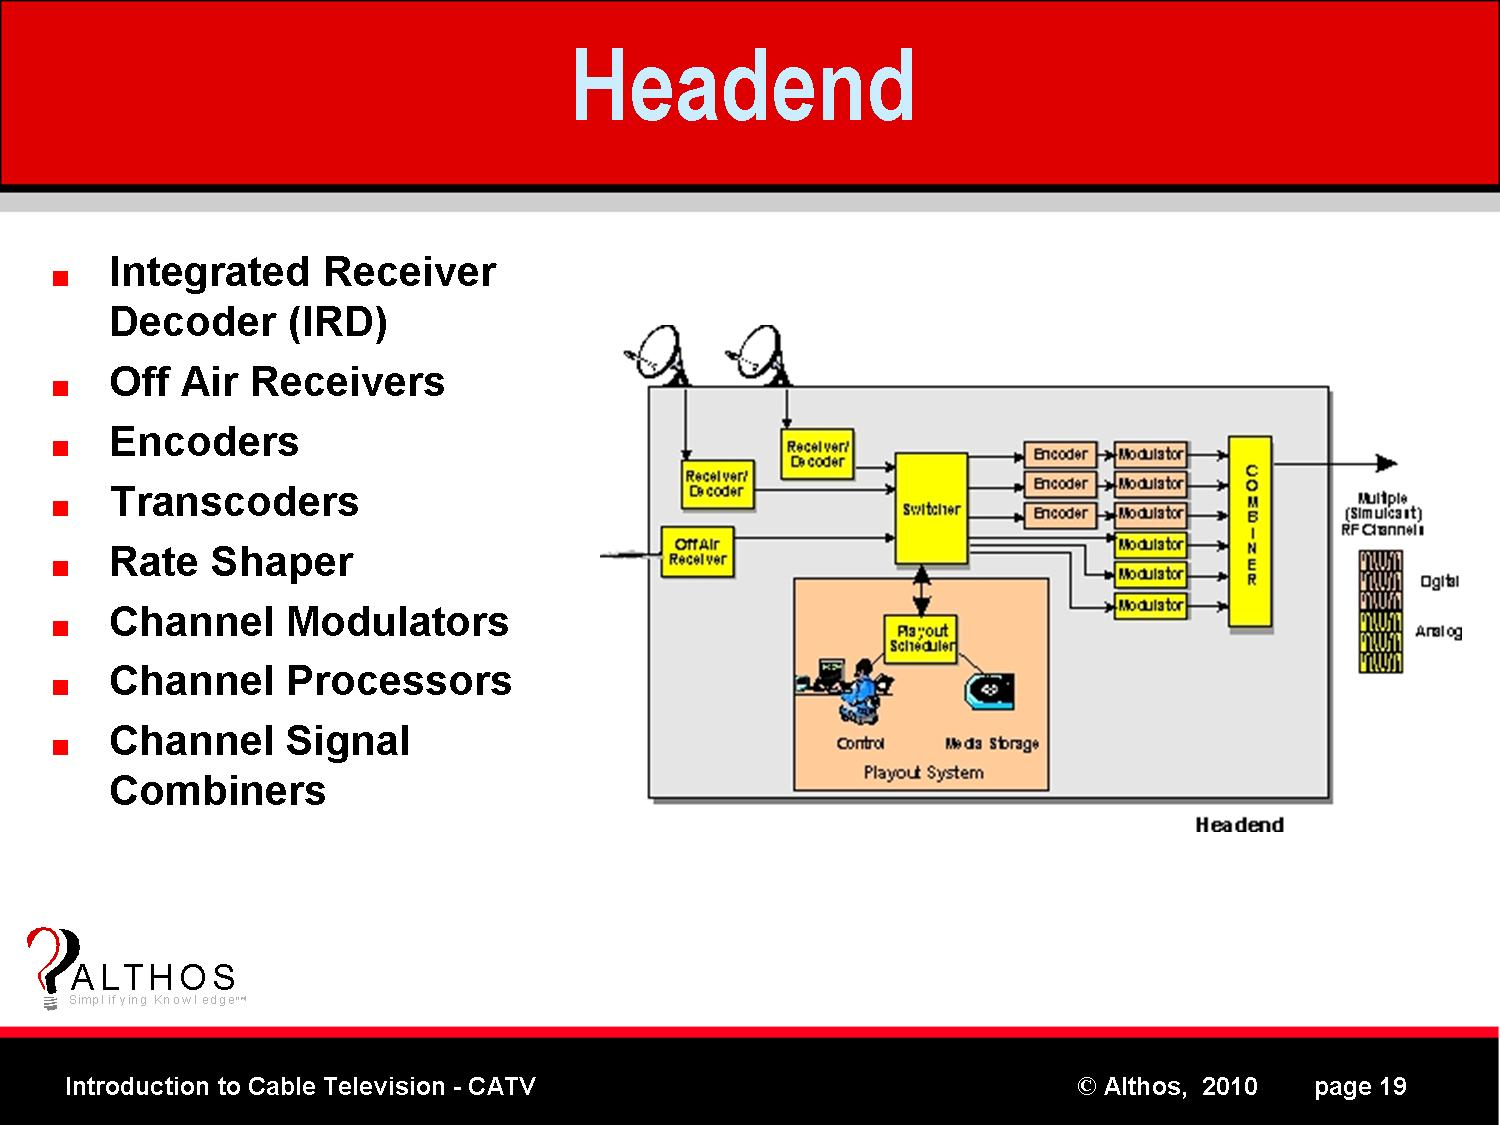 hight resolution of cable tv headend diagram wiring diagram dat cable tv block diagram